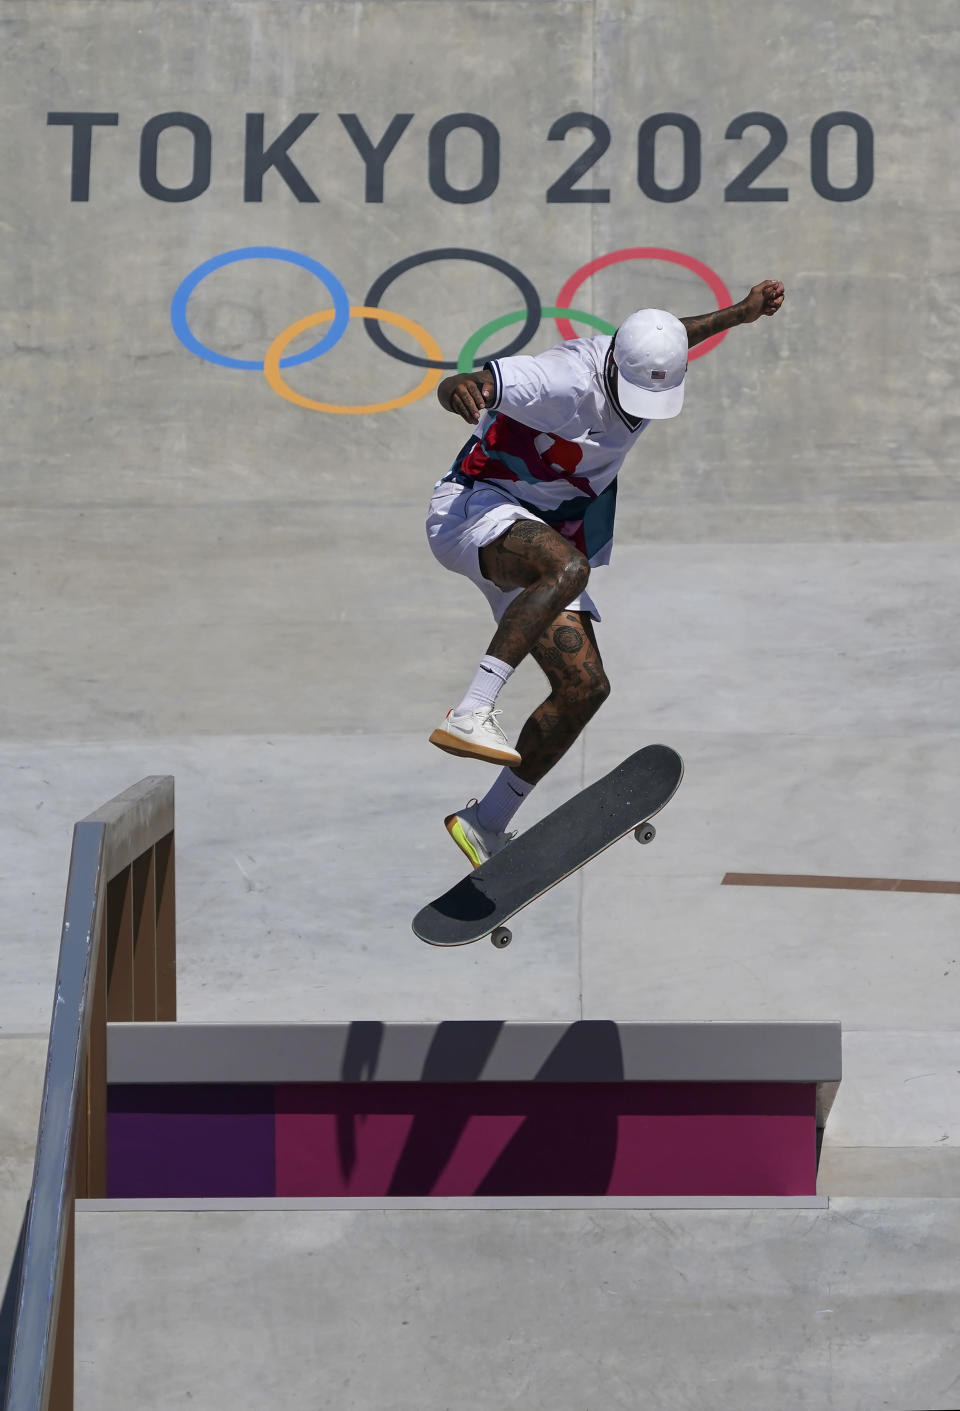 Nyjah Huston, of the United States, competes in men's street skateboarding during the Tokyo Olympics in Tokyo on Sunday, July 25, 2021. (Nathan Denette/The Canadian Press via AP)